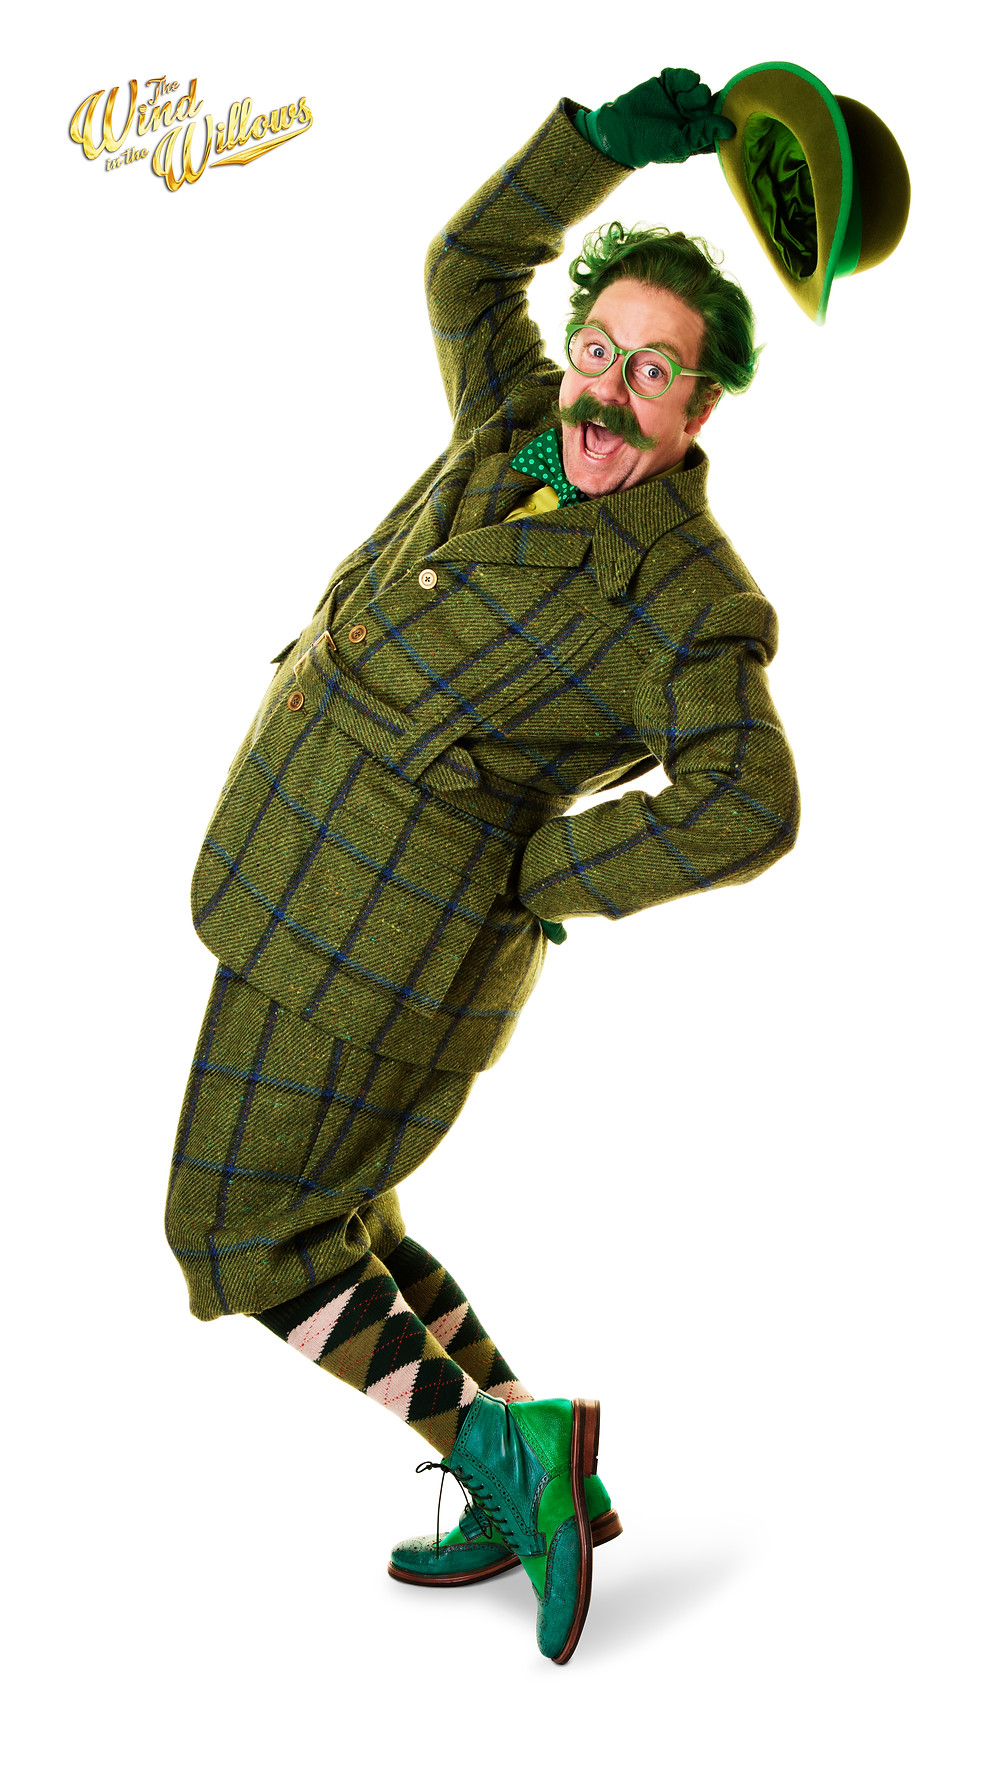 Wind In The Willows Review